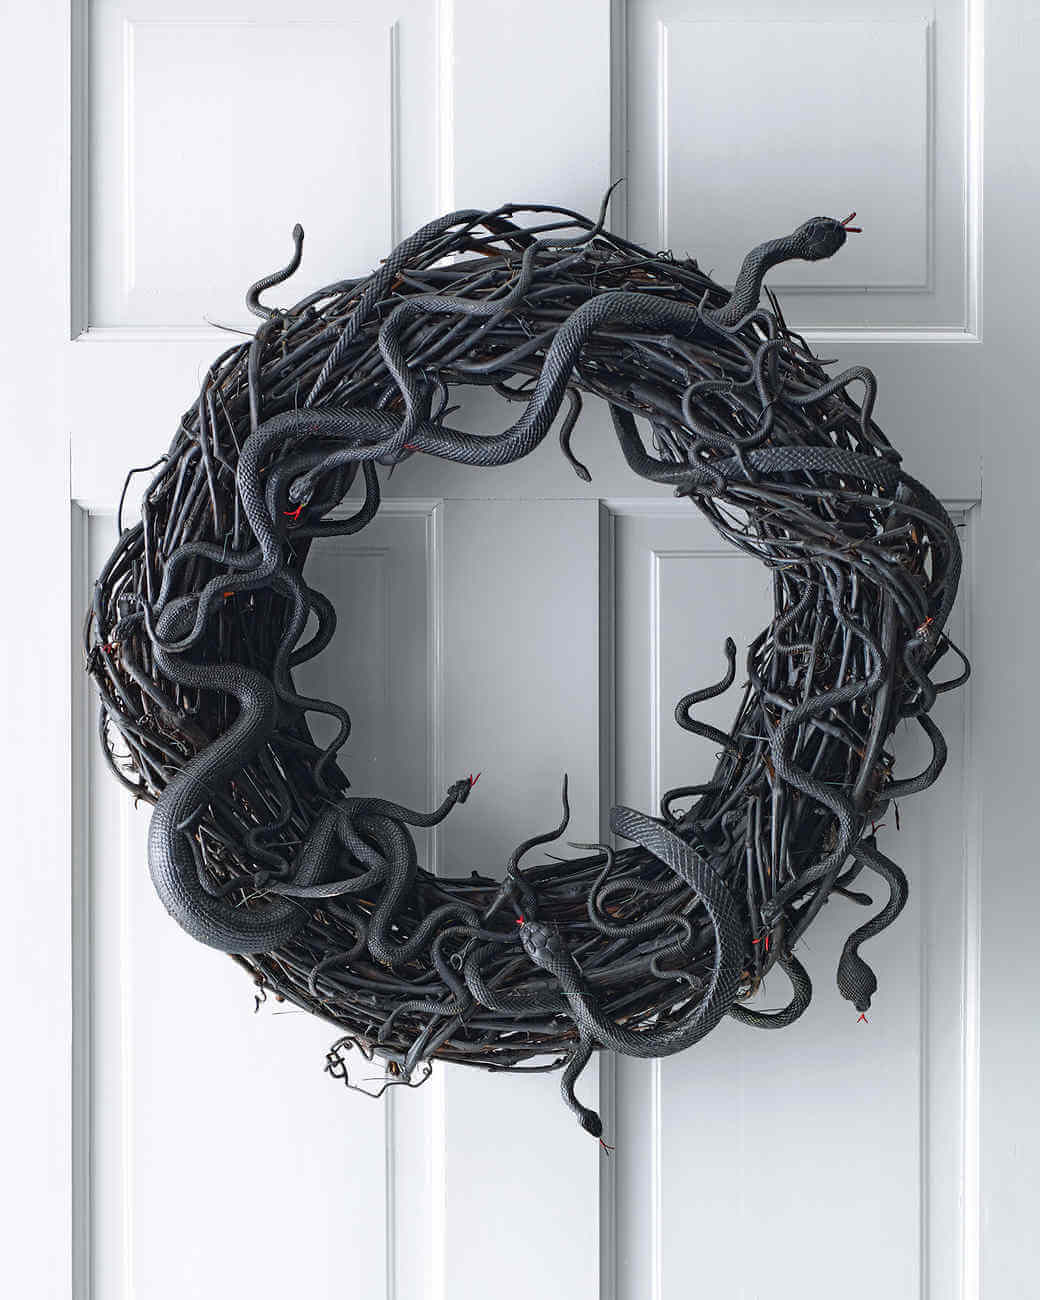 Wriggling snake wreath.